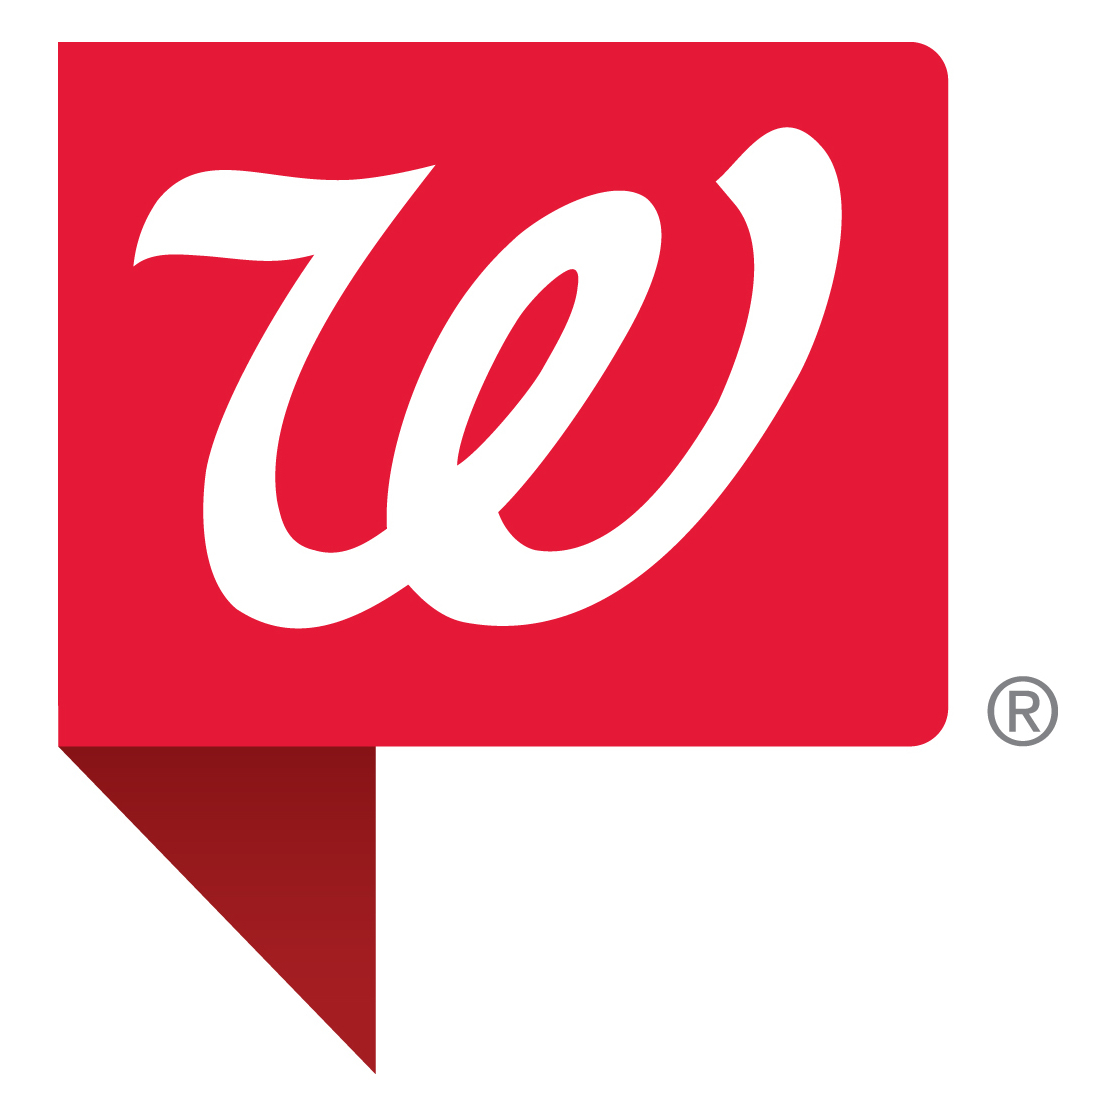 Walgreens - Lawrenceville, GA - Pharmacist